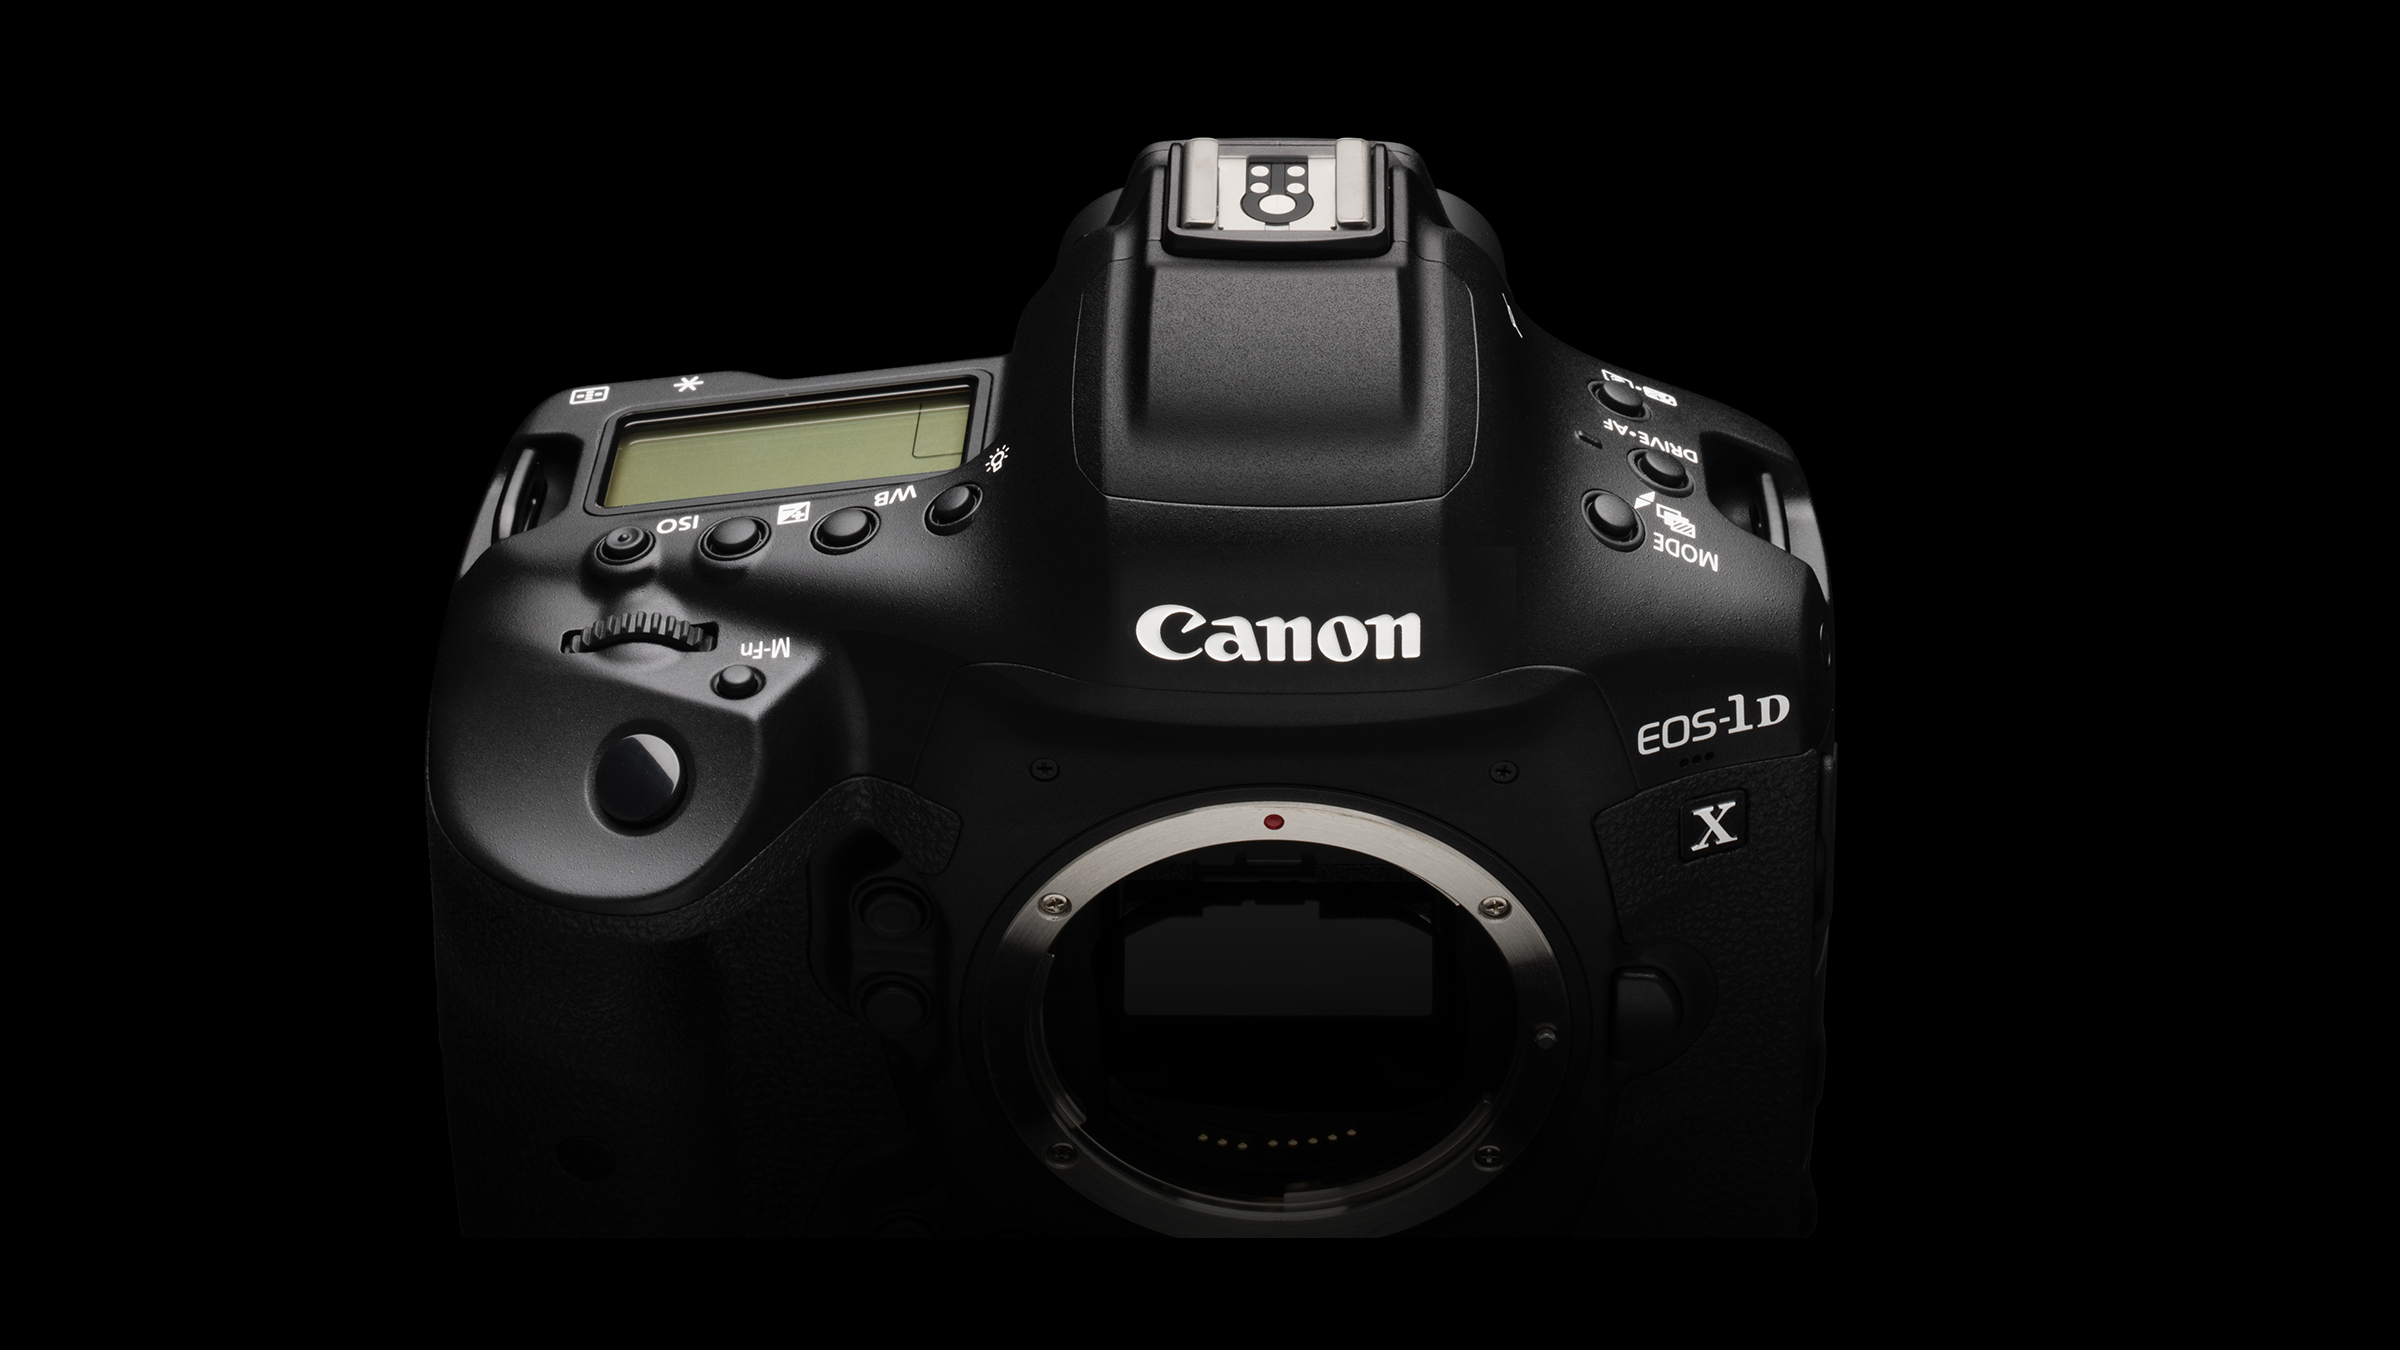 Canon: why the 1DX Mark III is a DSLR rather than a mirrorless camera